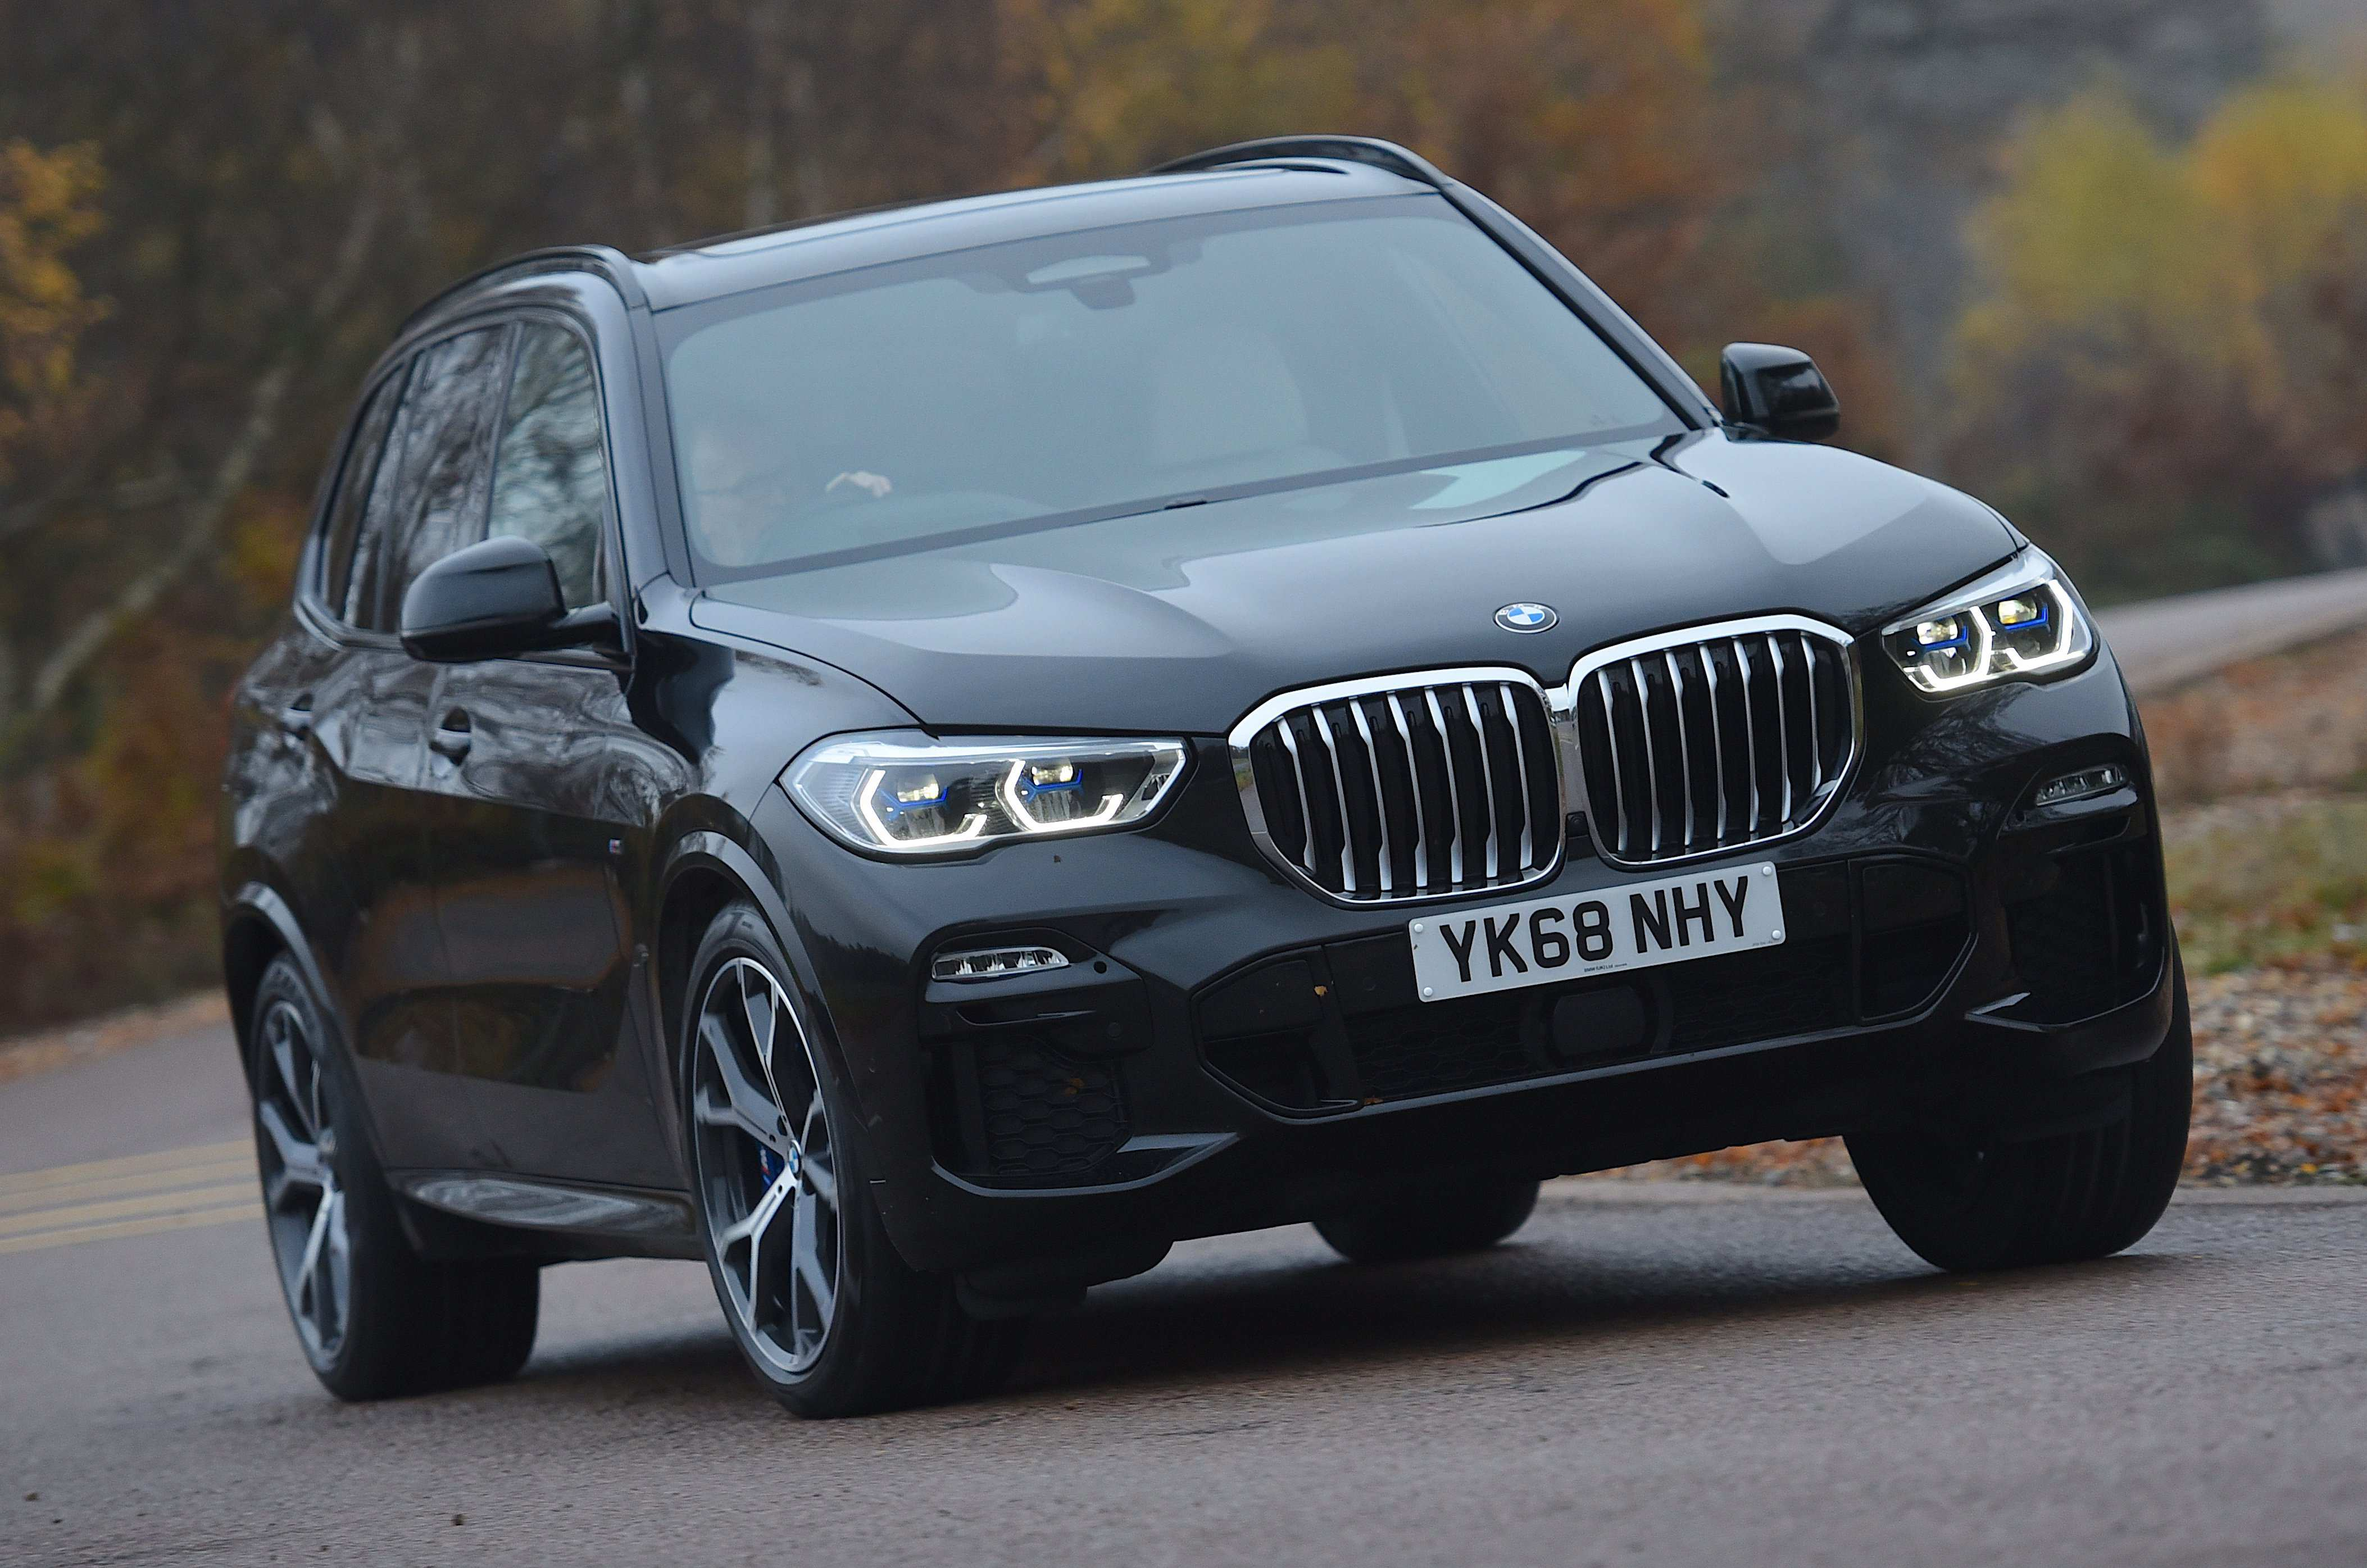 68 All New Bmw X5 2019 Price Usa First Drive Price Performance And Review Specs and Review by Bmw X5 2019 Price Usa First Drive Price Performance And Review